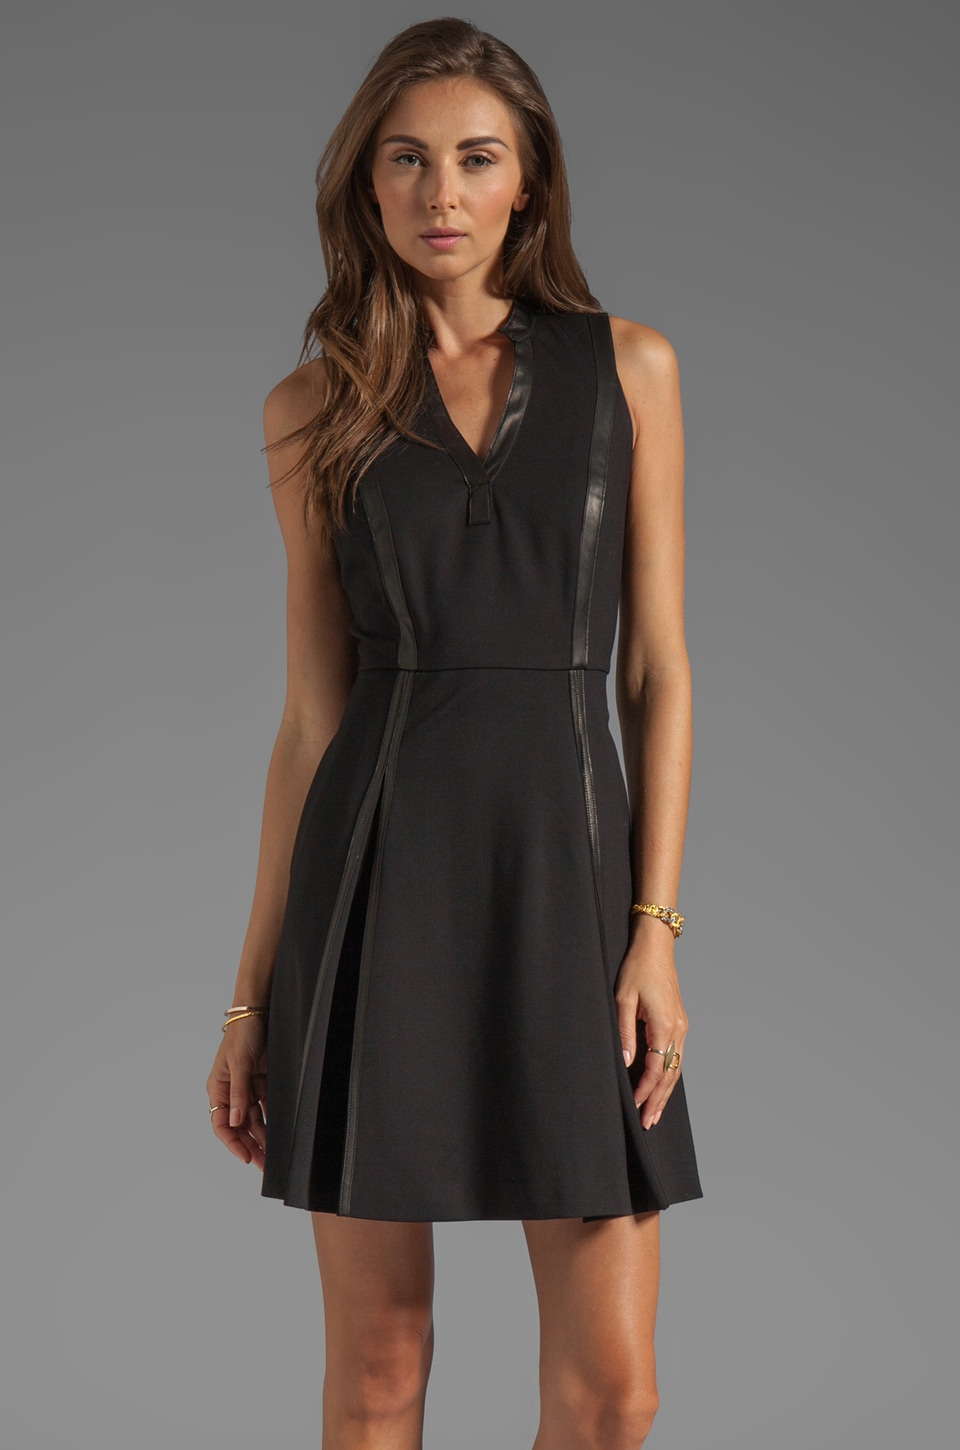 Rebecca Taylor Leather Panel Dress in Black